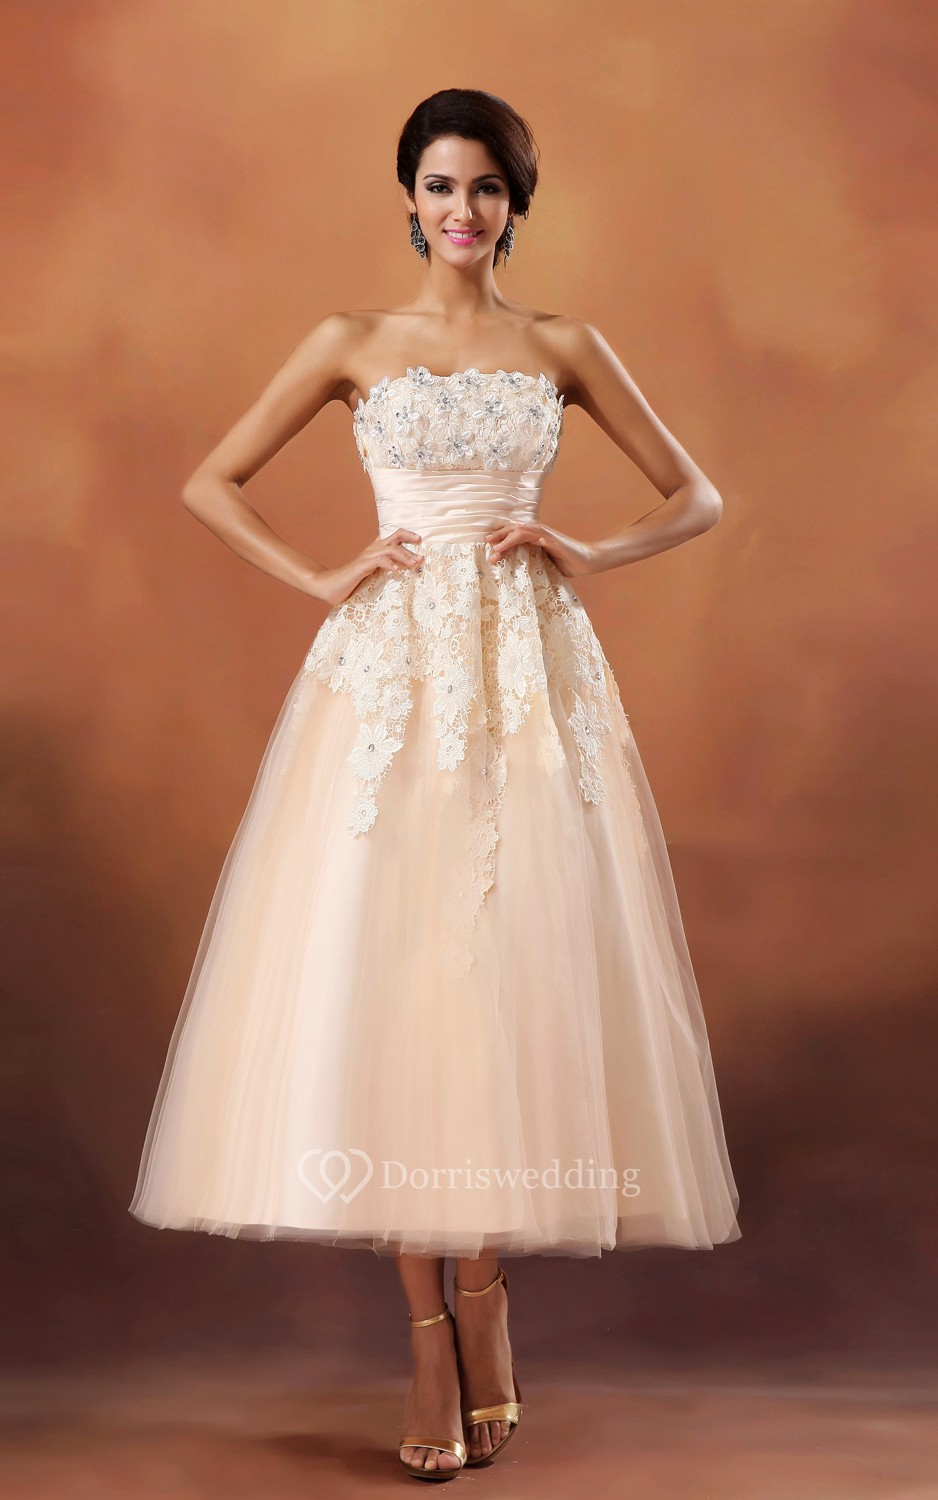 Strapless cinched waisband tea length dress with lace for Cinched waist wedding dress